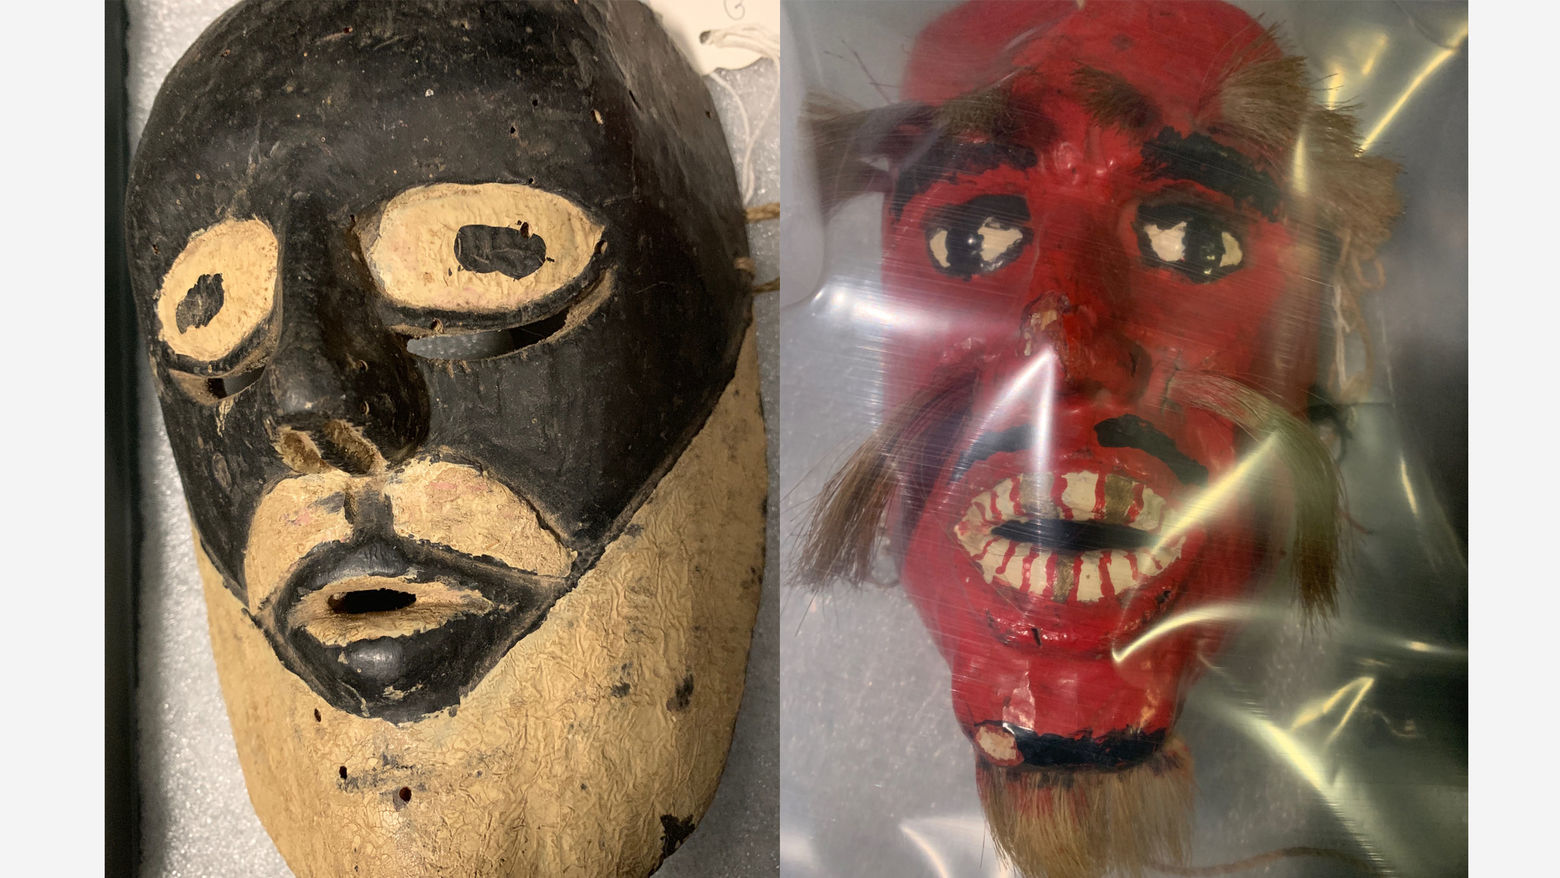 Images of two masks - on the left a wooden mask with black and white, and on the right a red mask with white teeth and hairy eyebrows, mustache and beard is seen underneath plastic